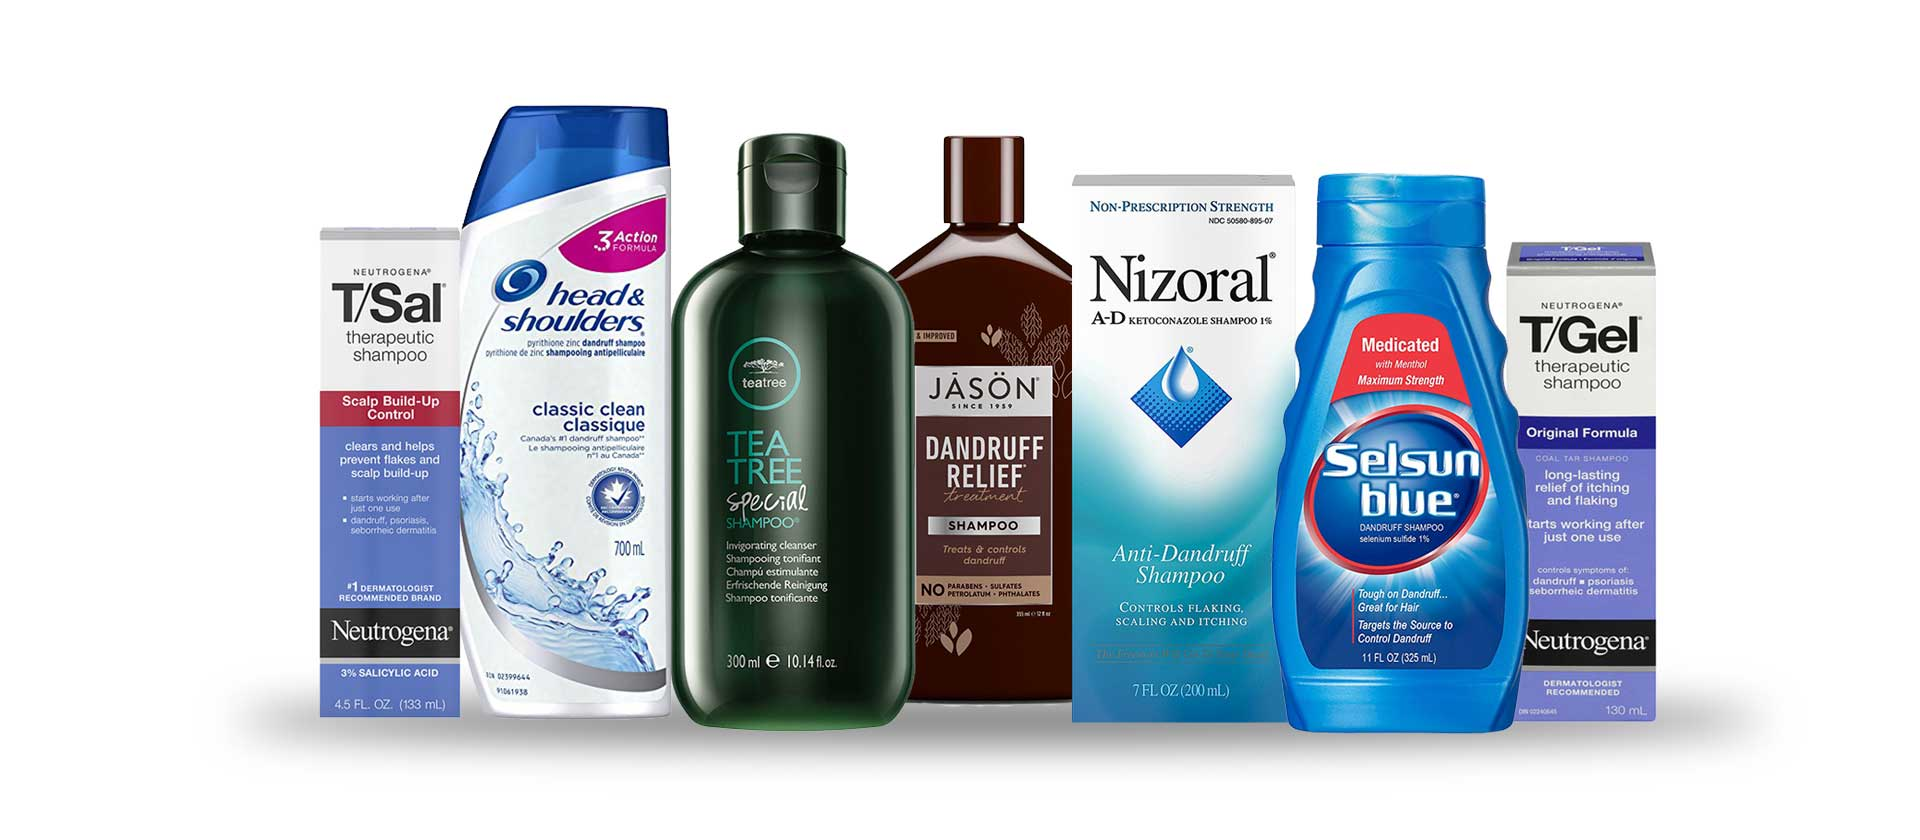 Packaging of the 7 most popular seborrheic dermatitis shampoos. From left to right; T/Sal Therapeutic Shampoo, Head and Shoulders Classic Clean, Paul Mitchell Tea Tree Special, Jason Dandruff Relief, Nizoral Ketoconazole Shampoo, Selsun Blue Dandruff Shampoo, T/Gel Therapeutic Shampoo.